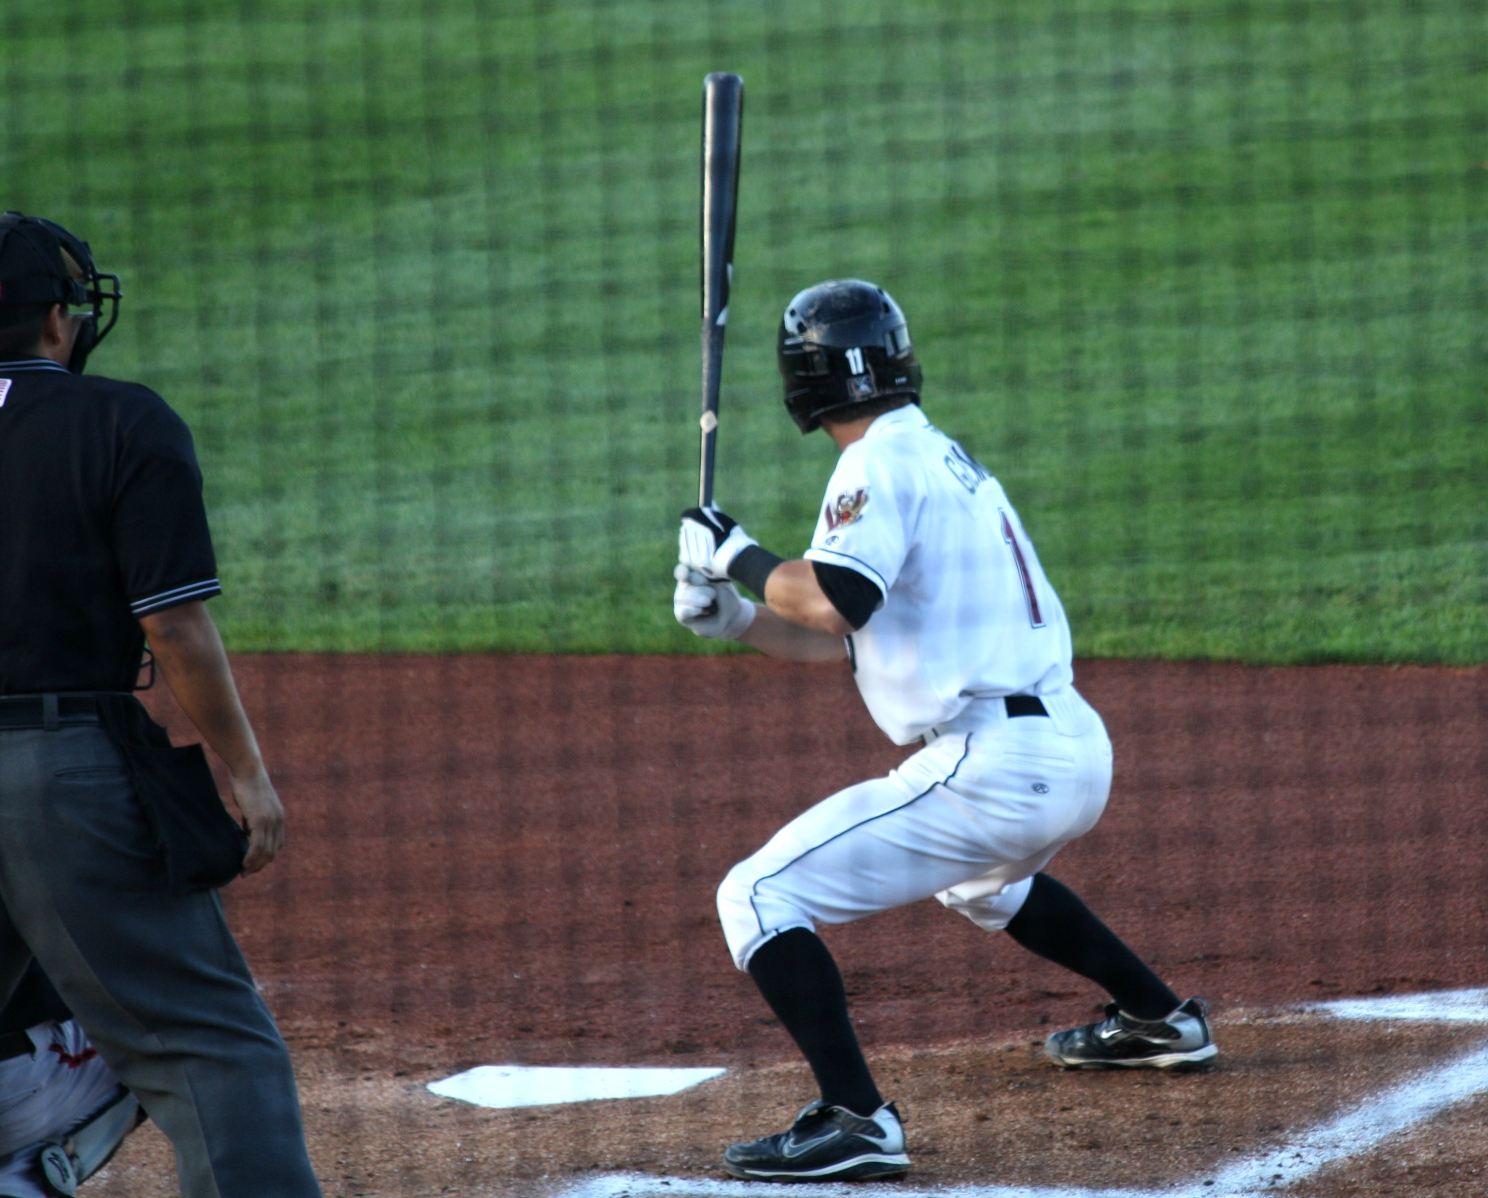 Scooter Gennett Batting Stance